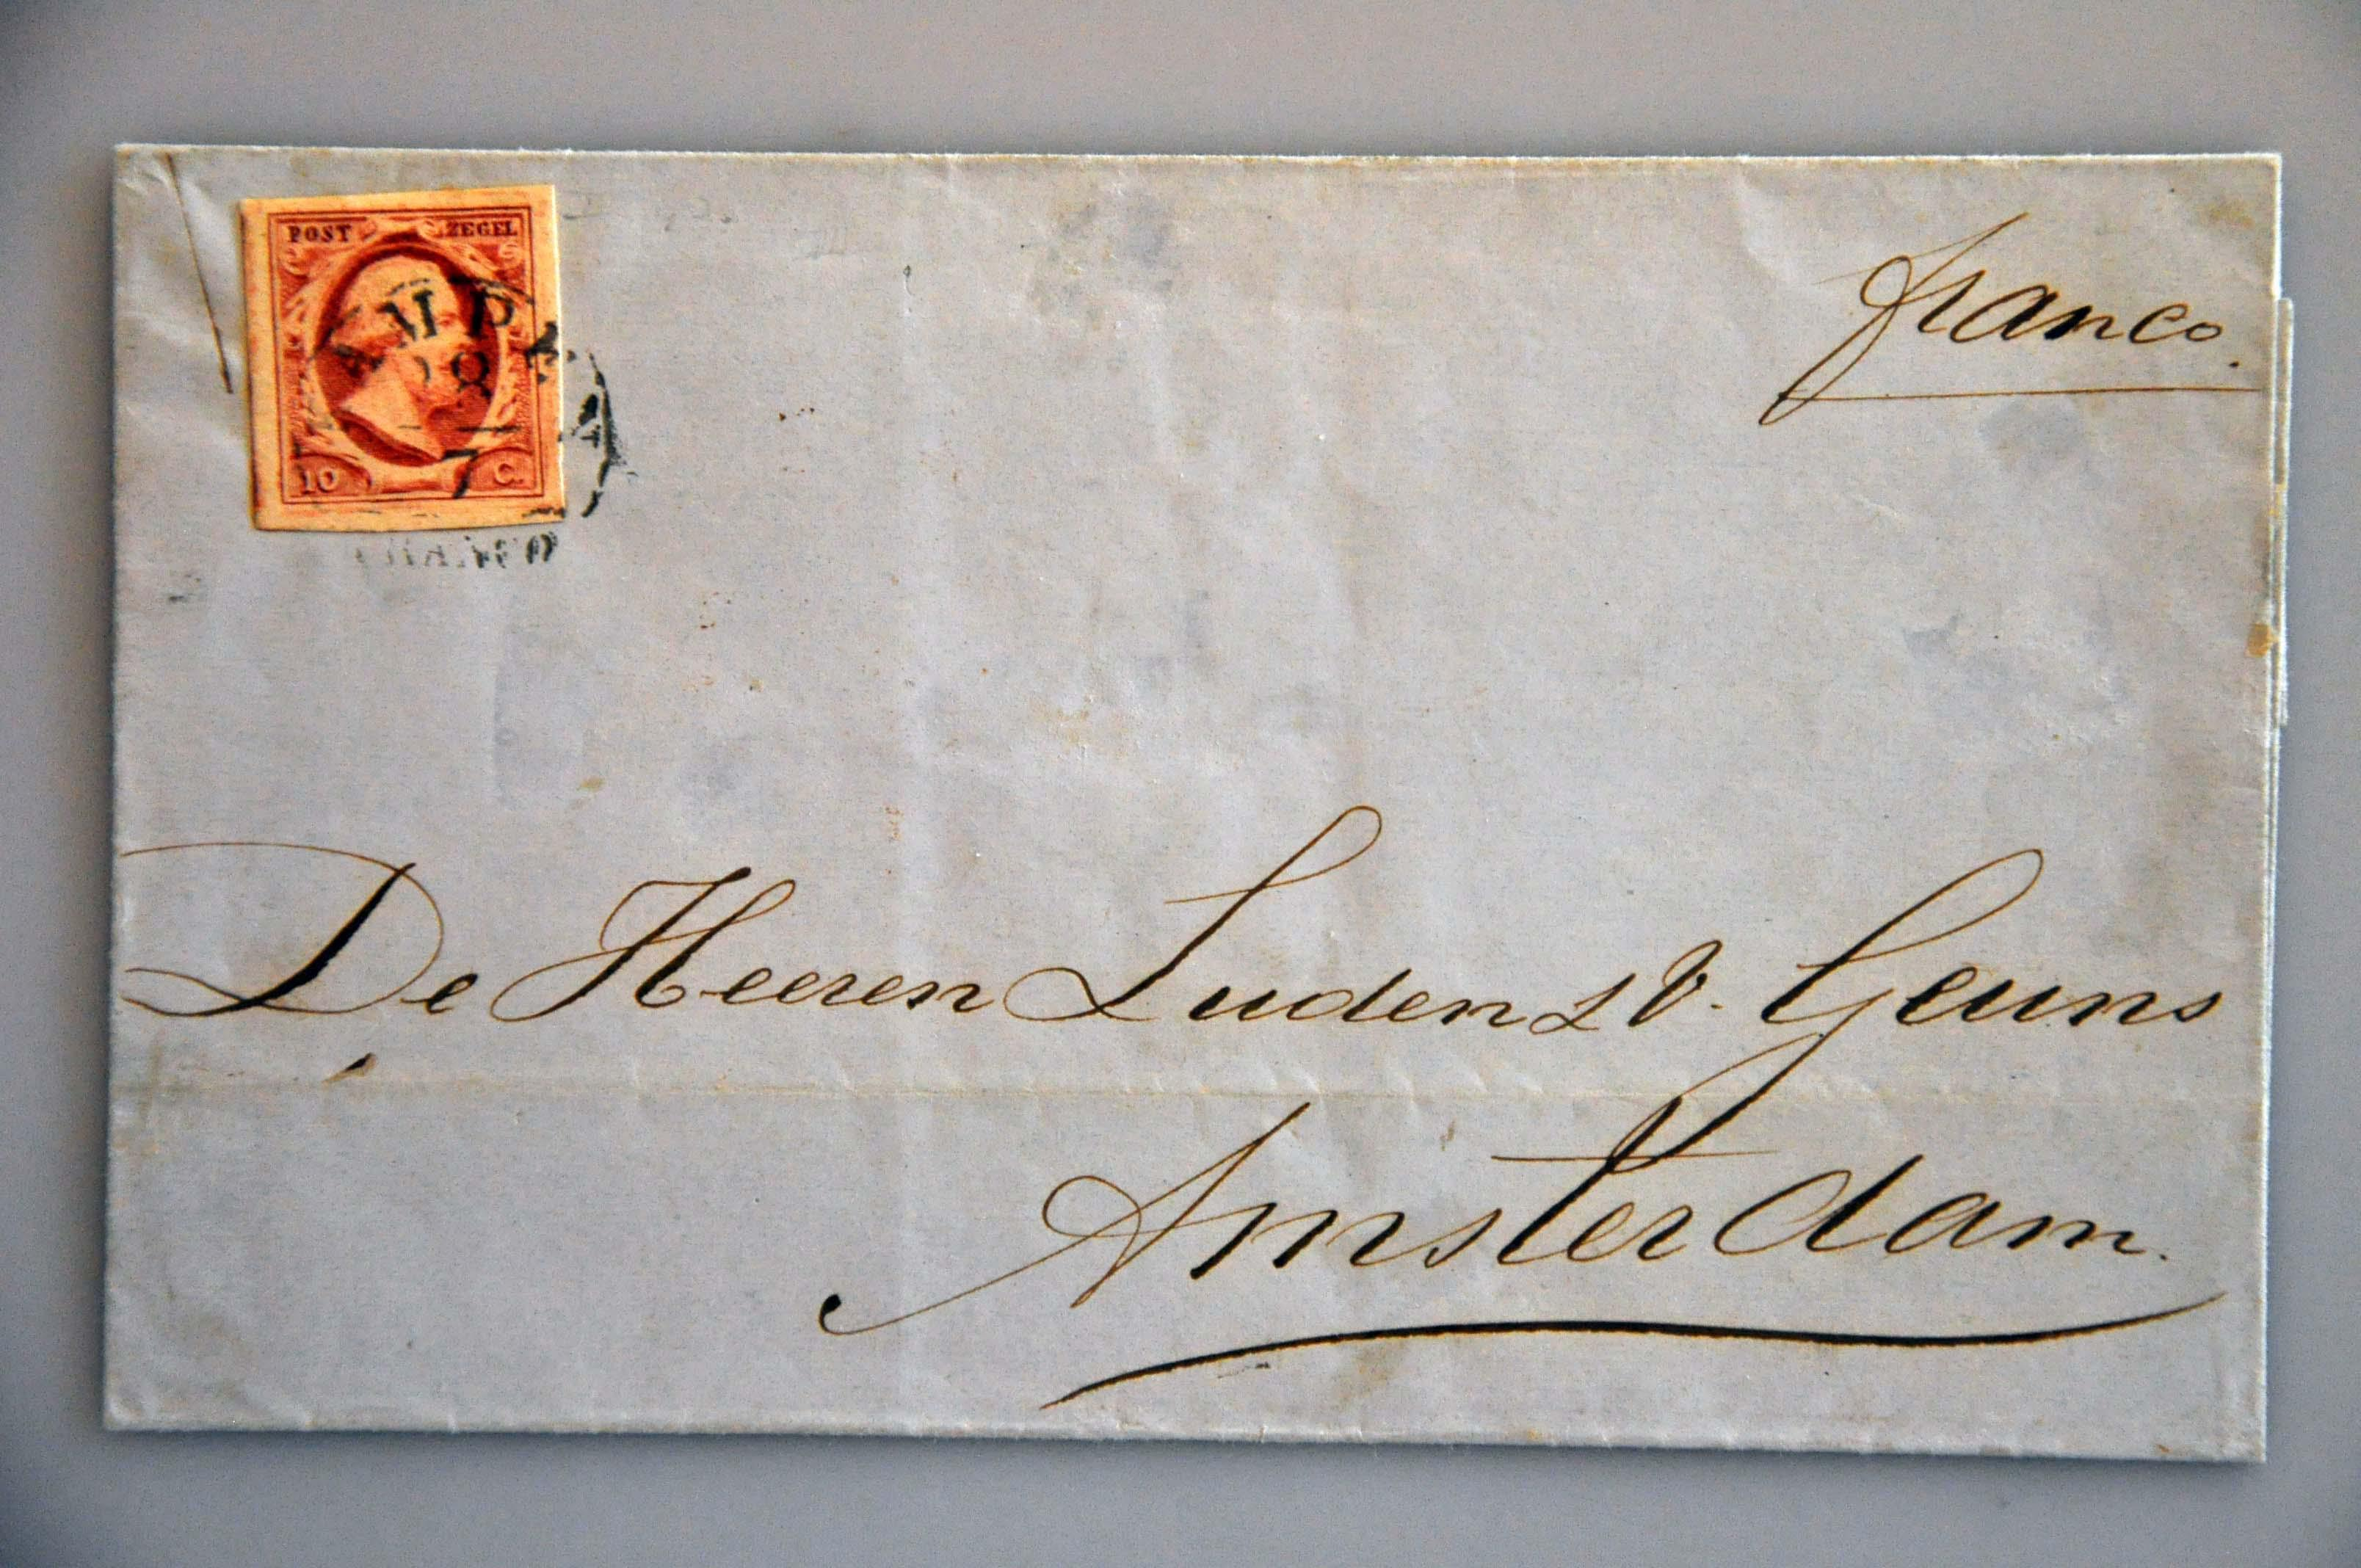 Lot 2353 - Netherlands and former colonies Netherlands -  Corinphila Veilingen Auction 244 -Netherlands and former colonies, WW2 Postal History, Bosnia, German and British colonies, Egypt. - Day 2